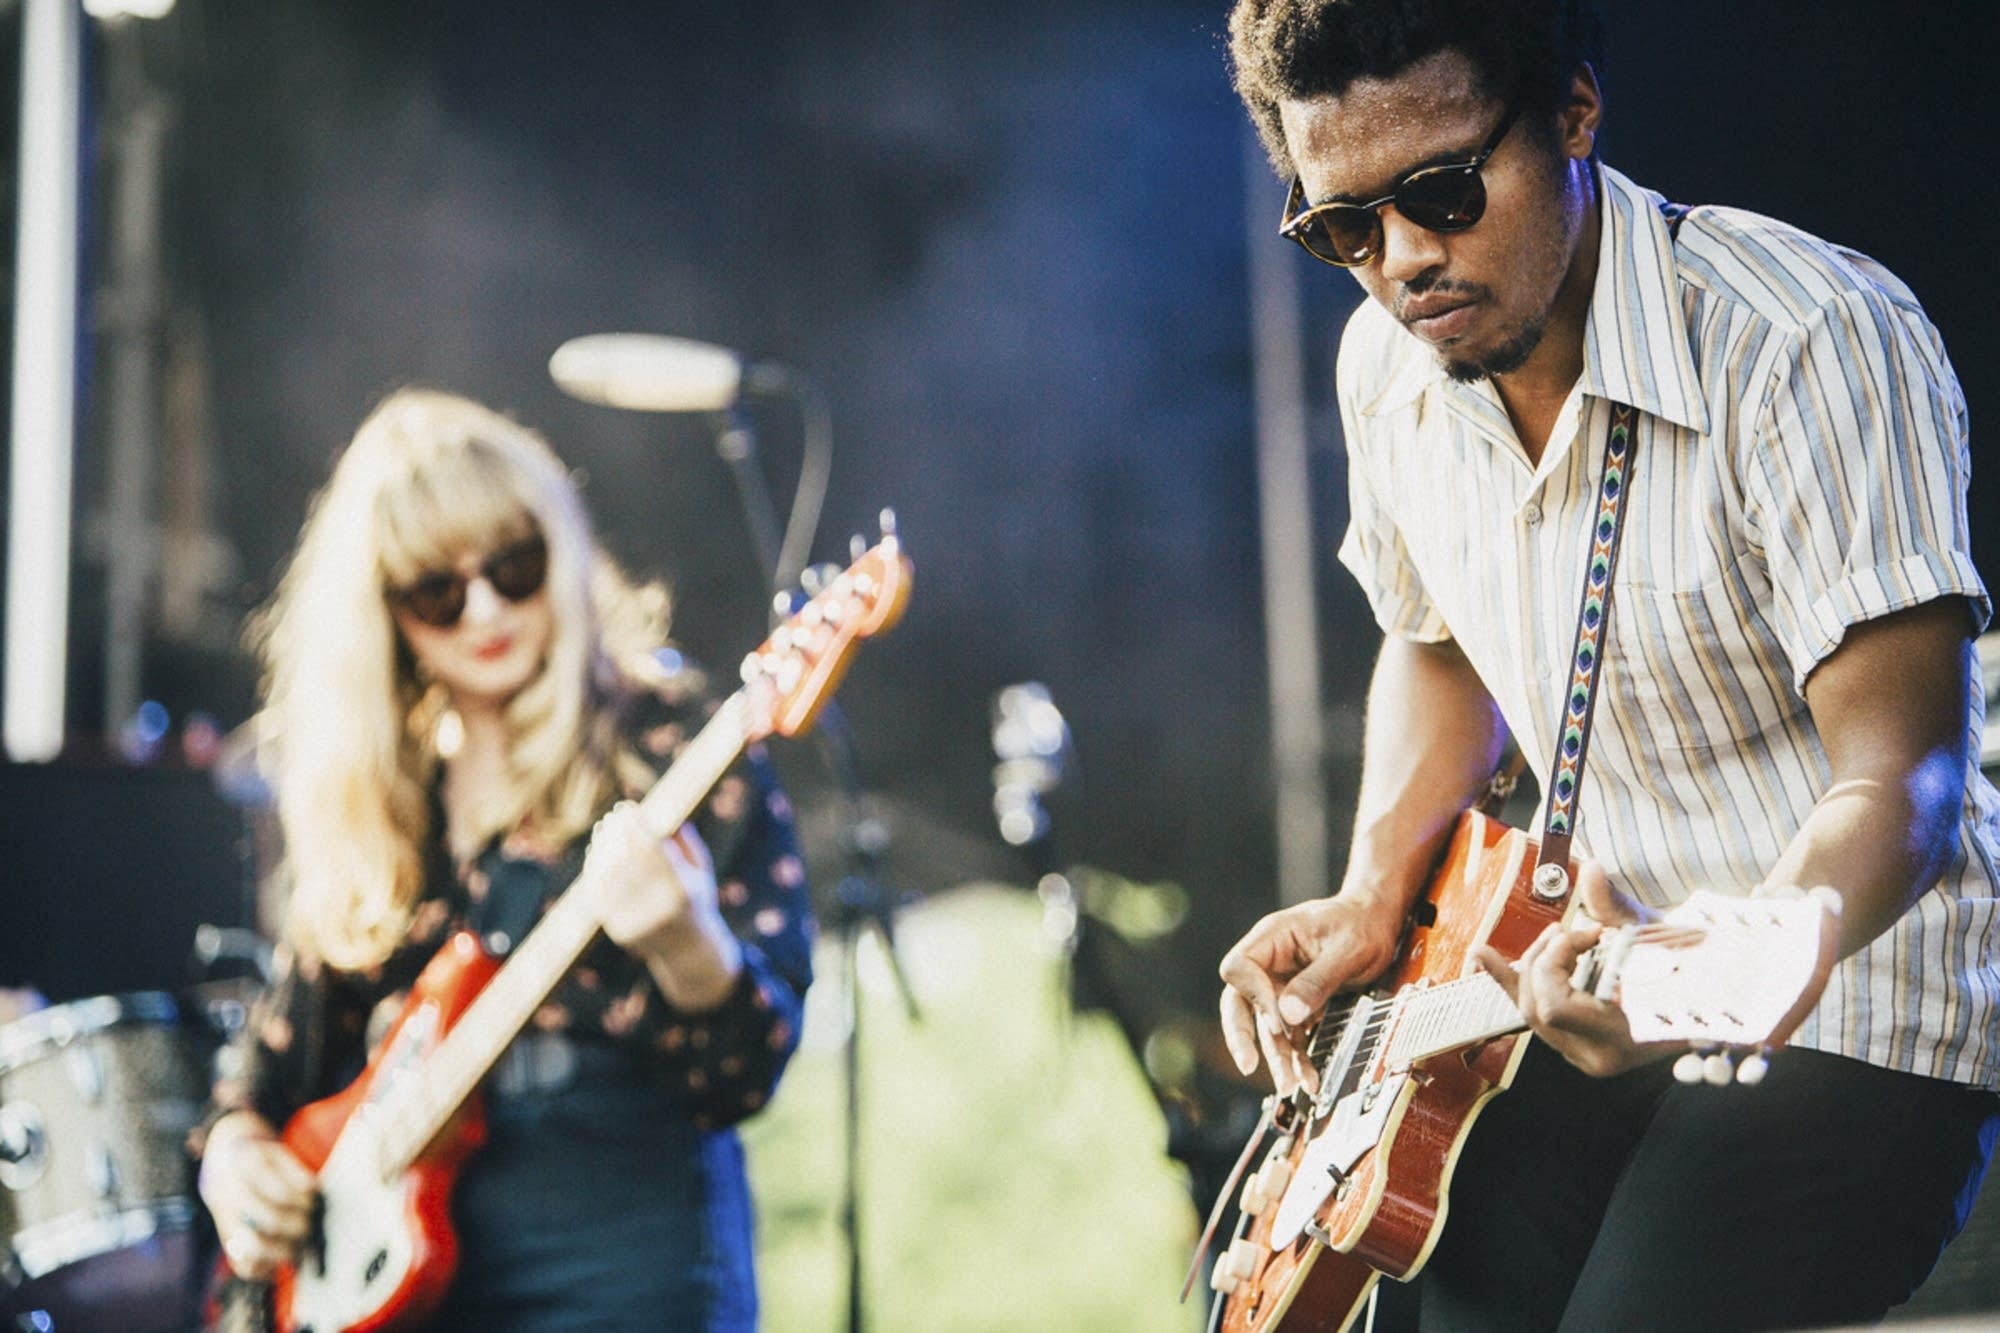 Benjamin Booker on the main stage.